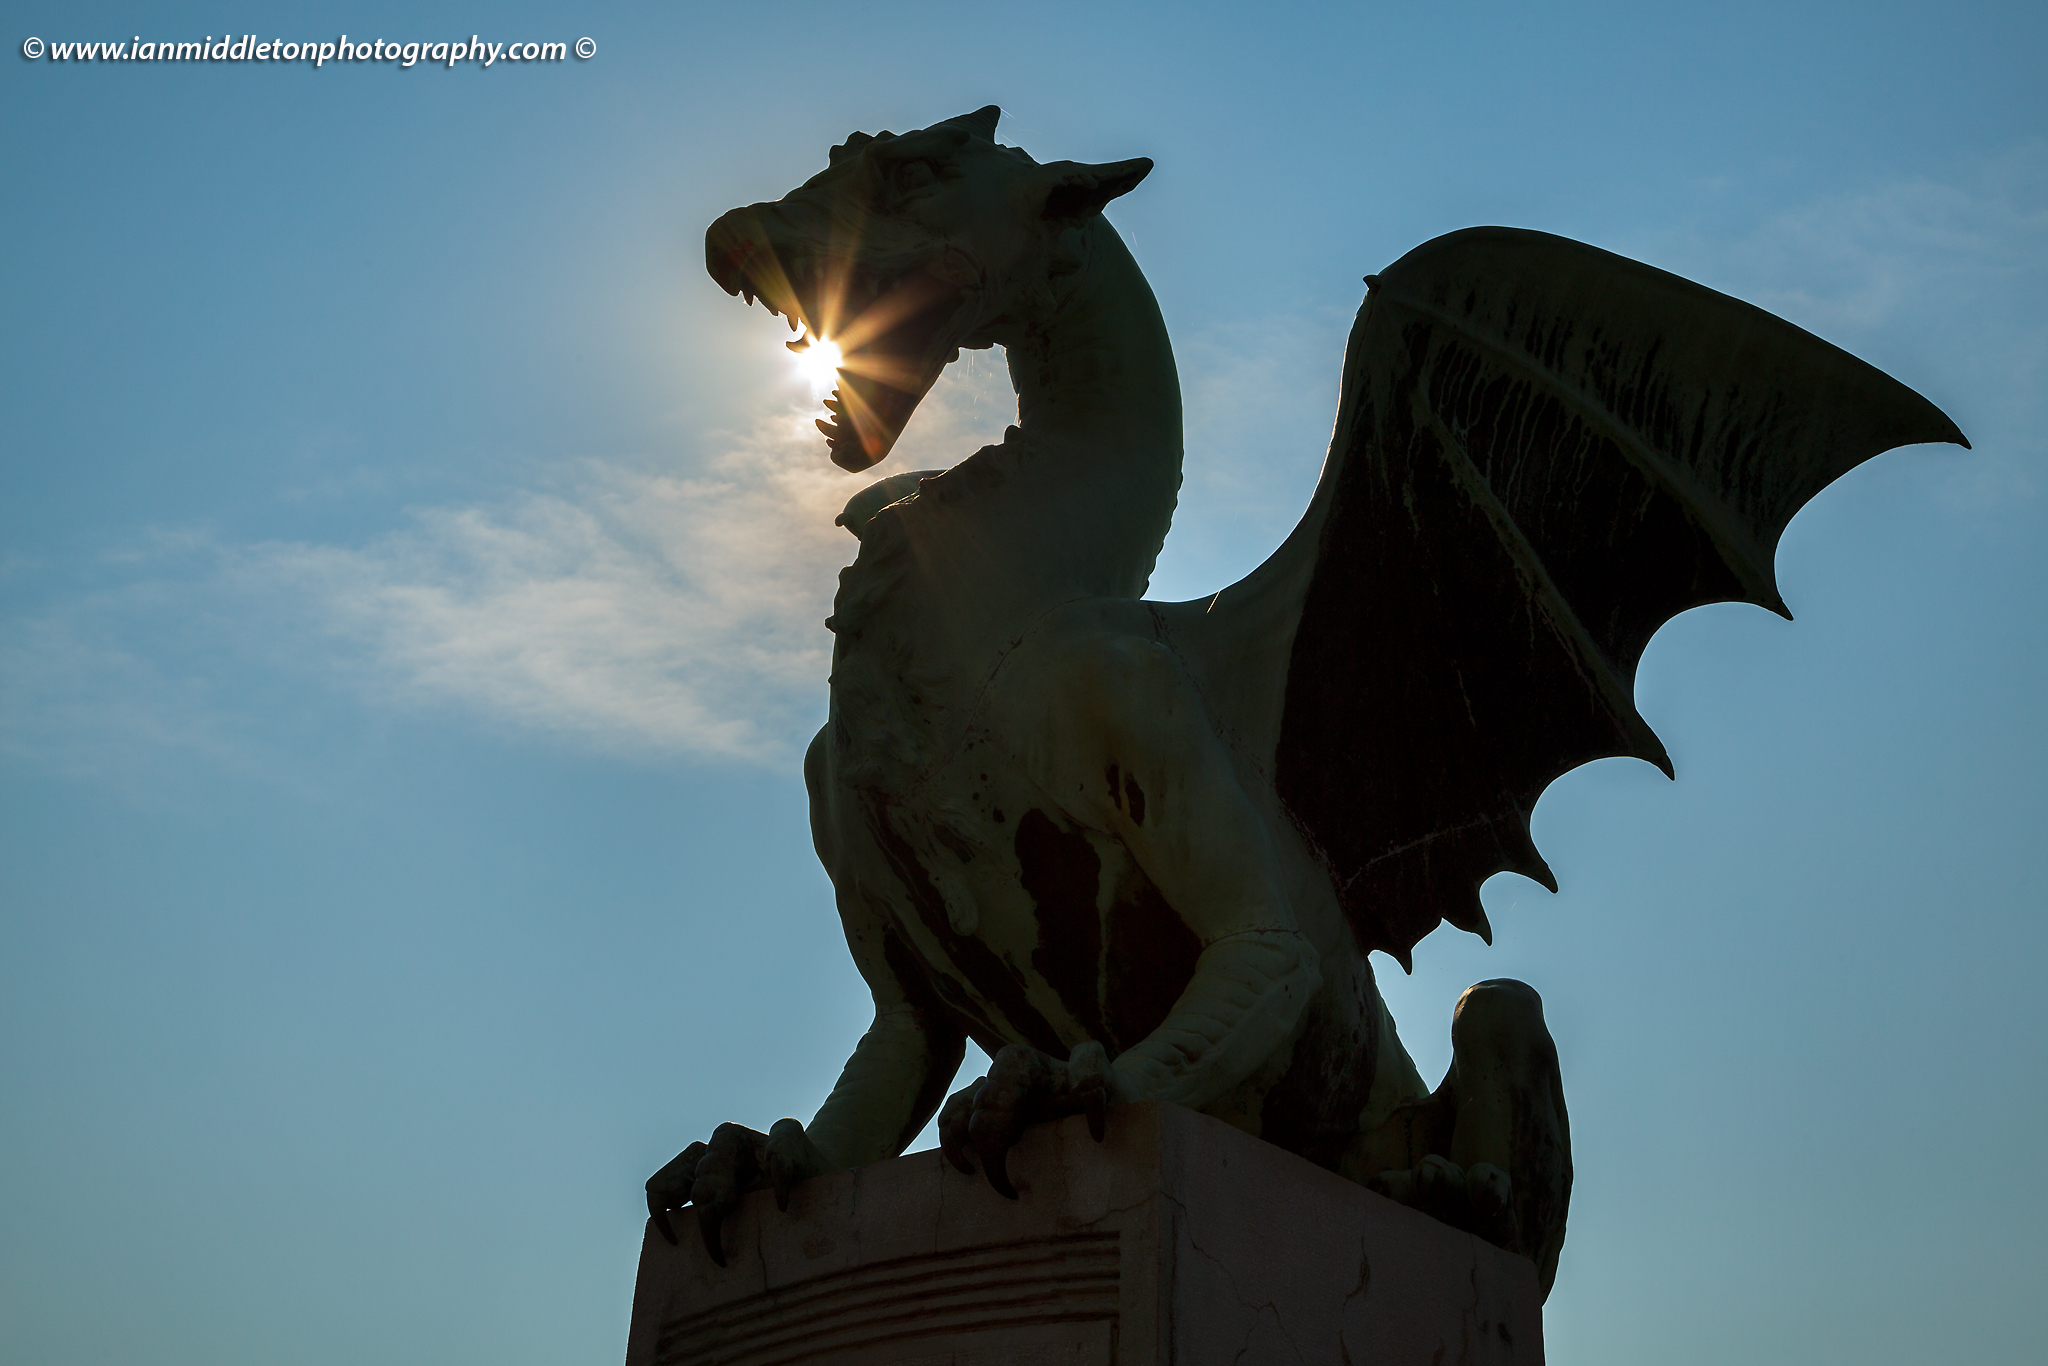 Sunburst through the mouth of a dragon on the Dragon Bridge in Ljubljana, Slovenia.